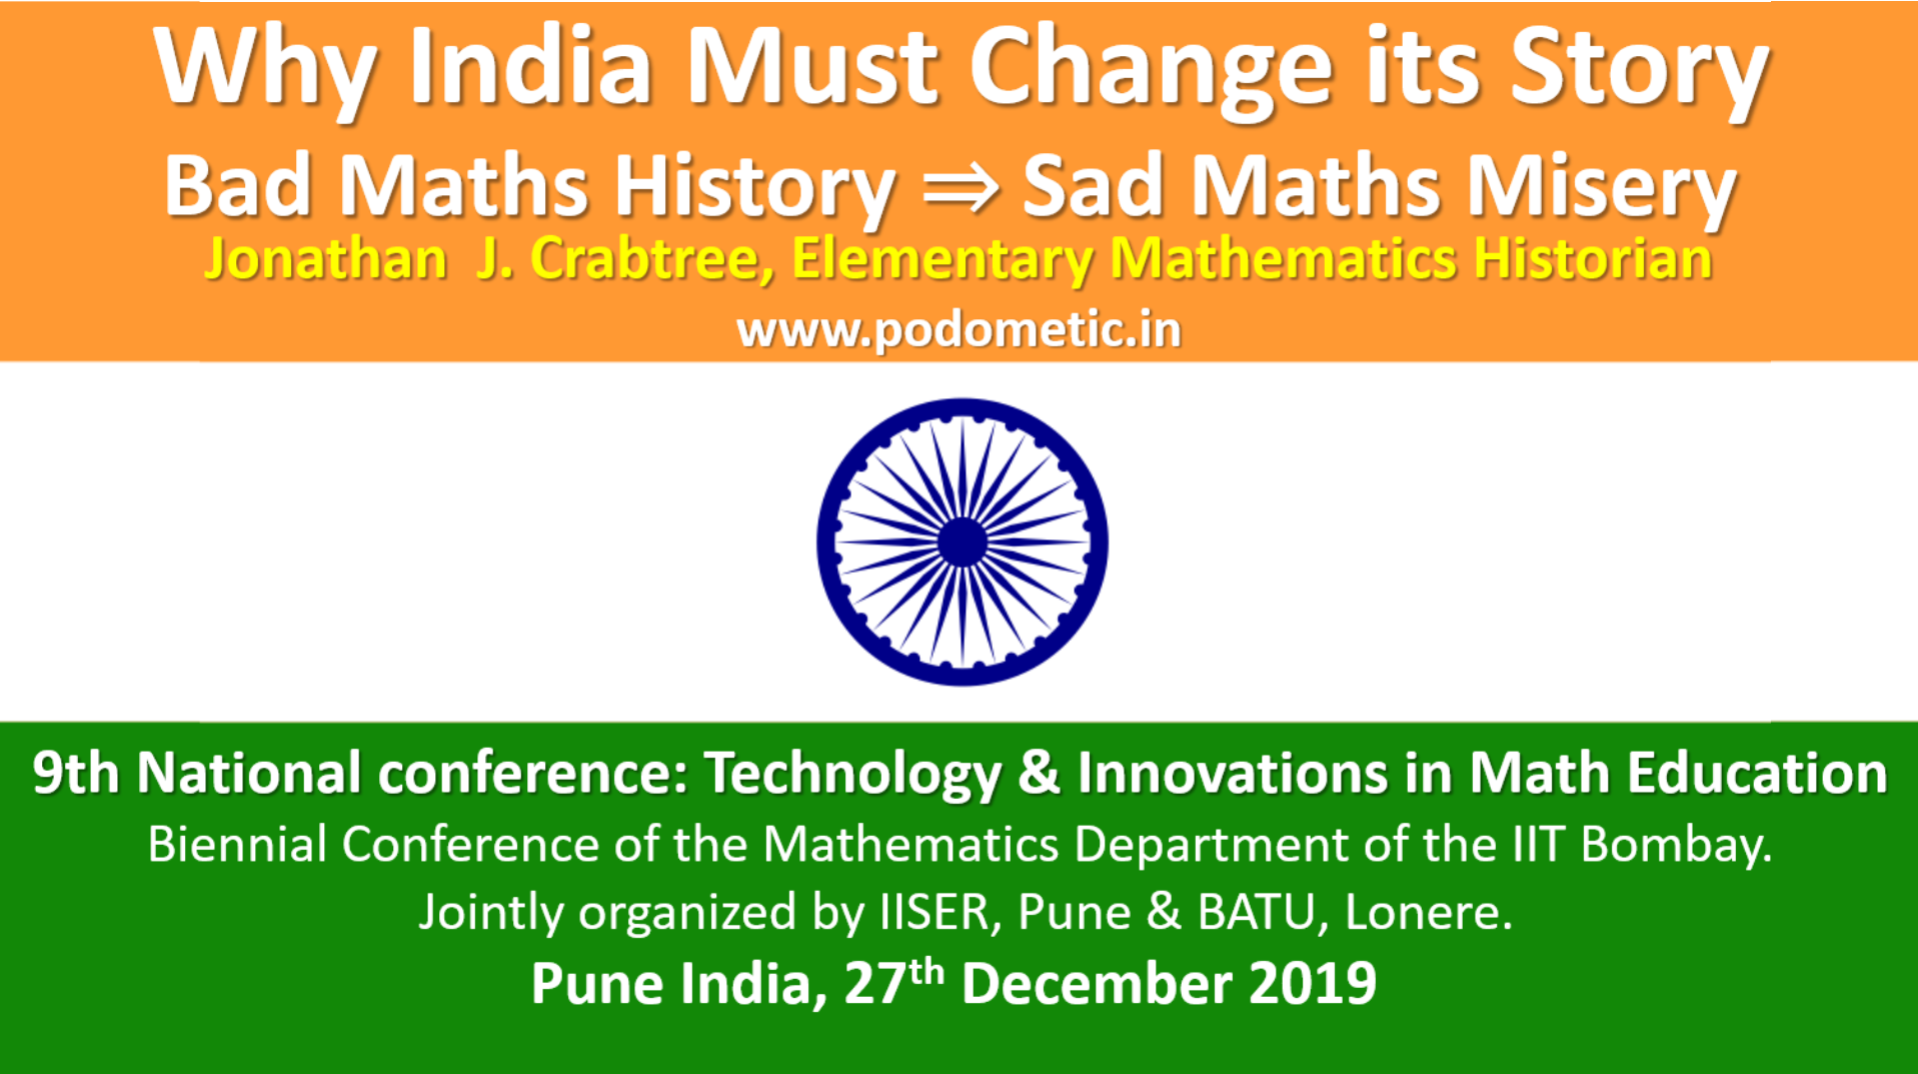 Bad Maths History ⇒ Sad Maths Misery Why India Must Change its Story